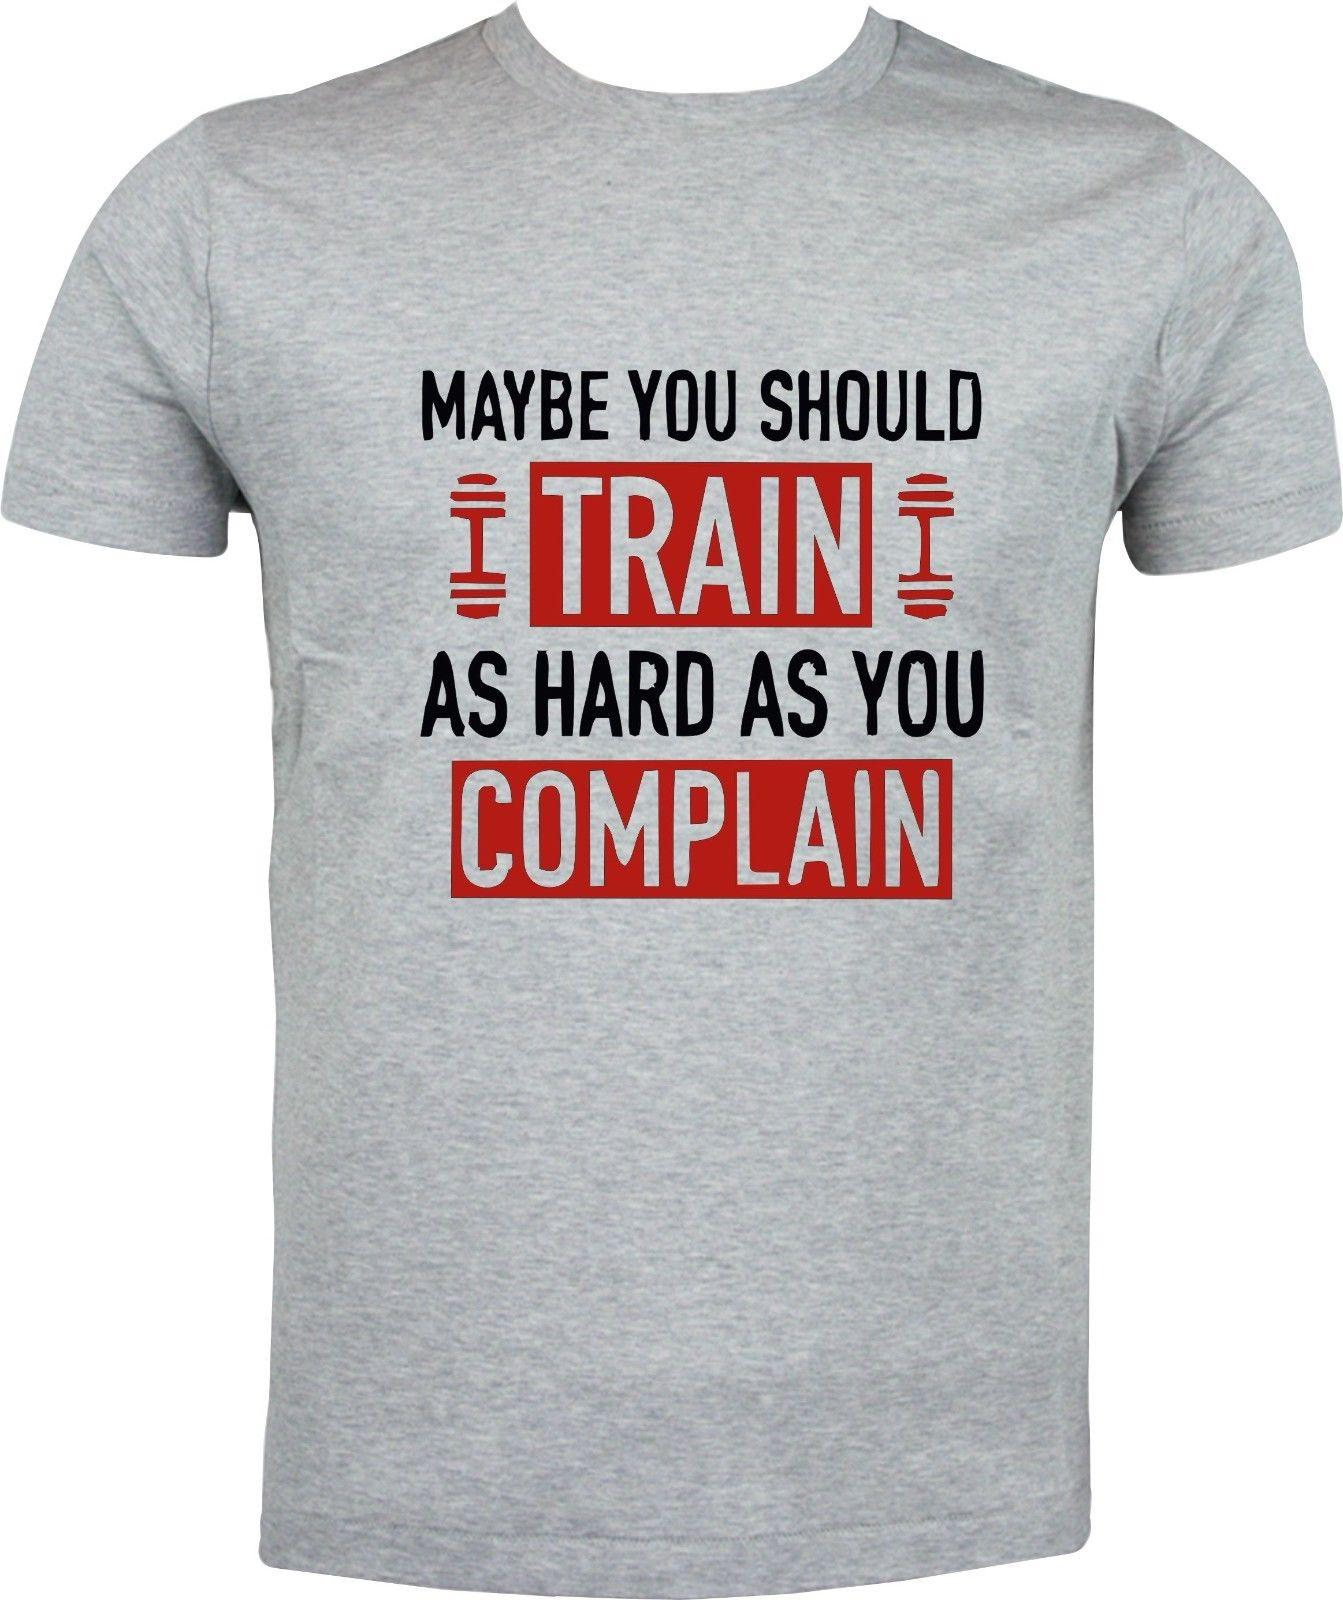 ed3018d2 MAYBE YOU SHOULD TRAIN AS HARD YOU COMPLAIN FUNNY SARCASTIC SUBLIMATION T  SHIRT T Shirt On Shirt Online Tee Shirts Shopping From Crazylikeafawkes, ...